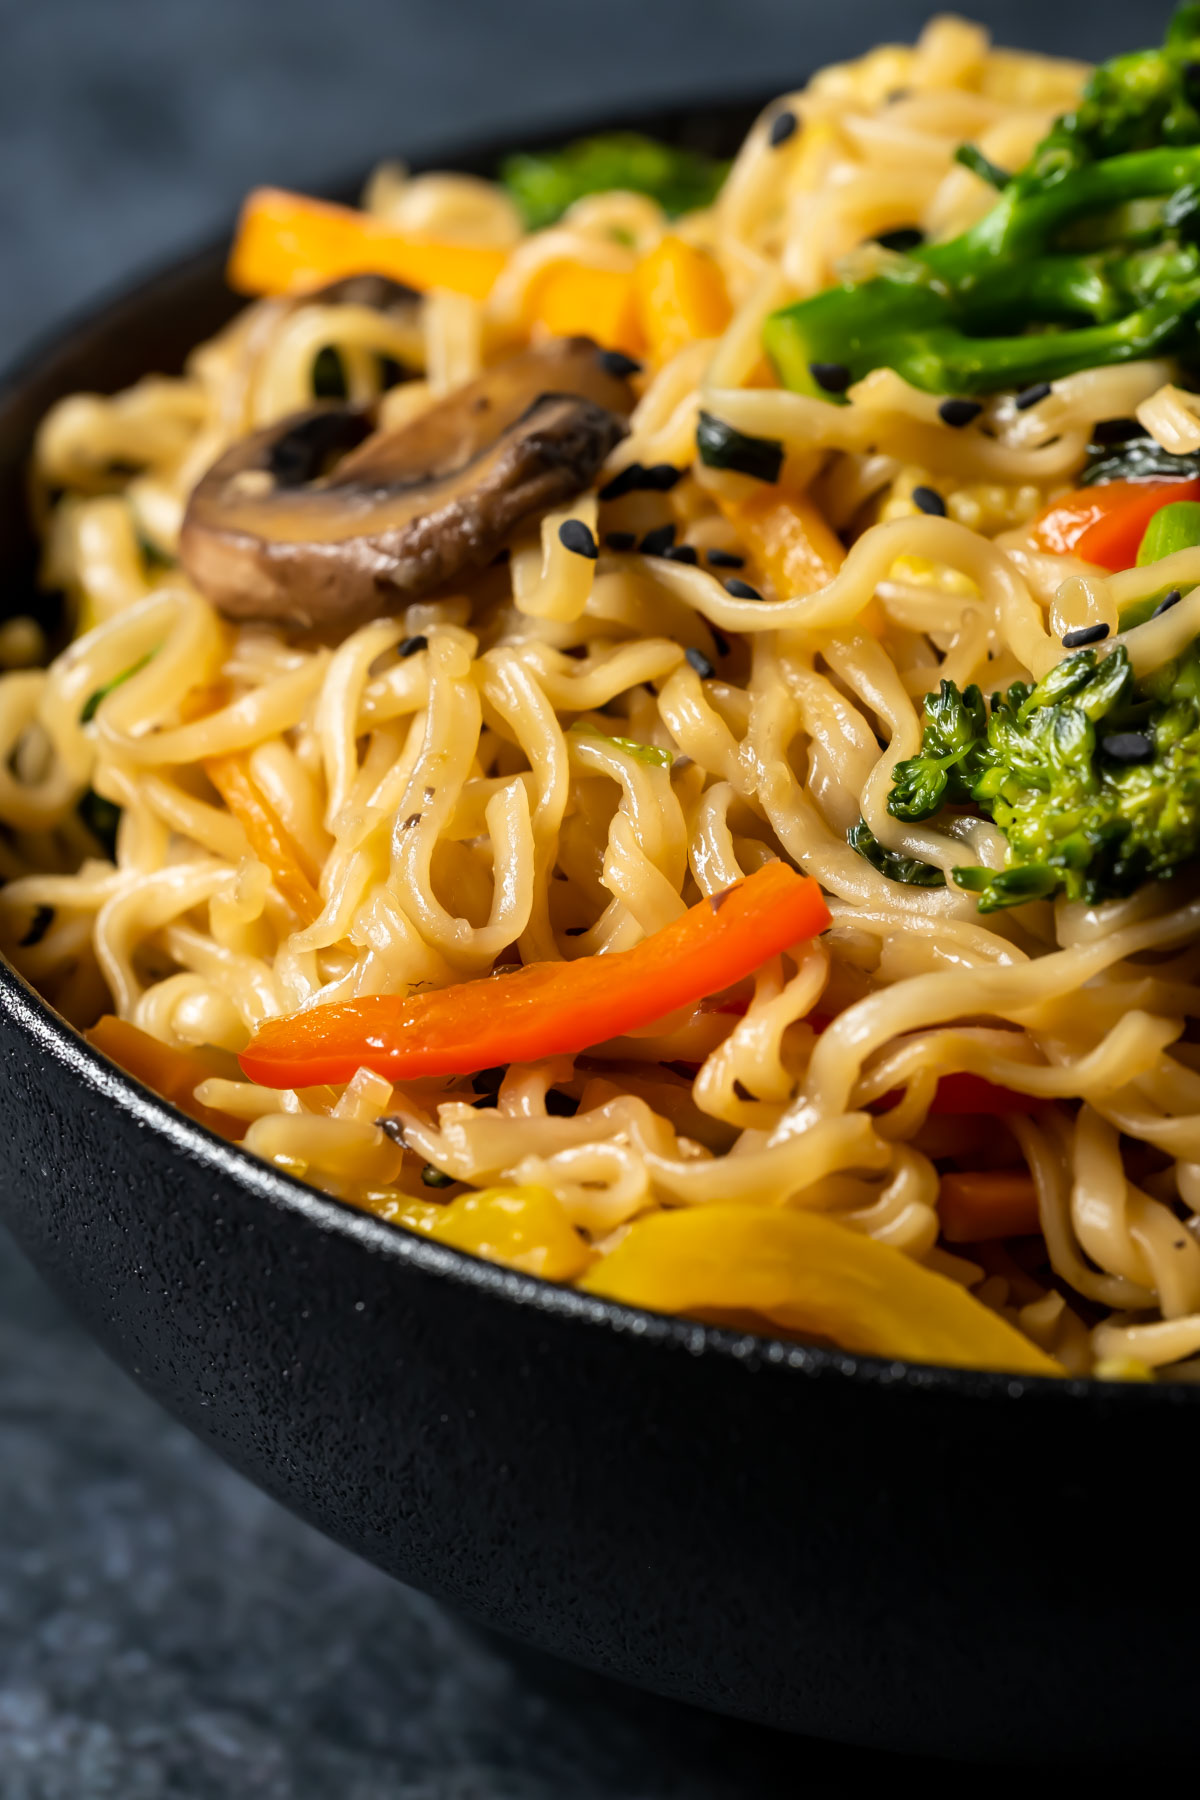 Vegan chow mein in a black bowl.